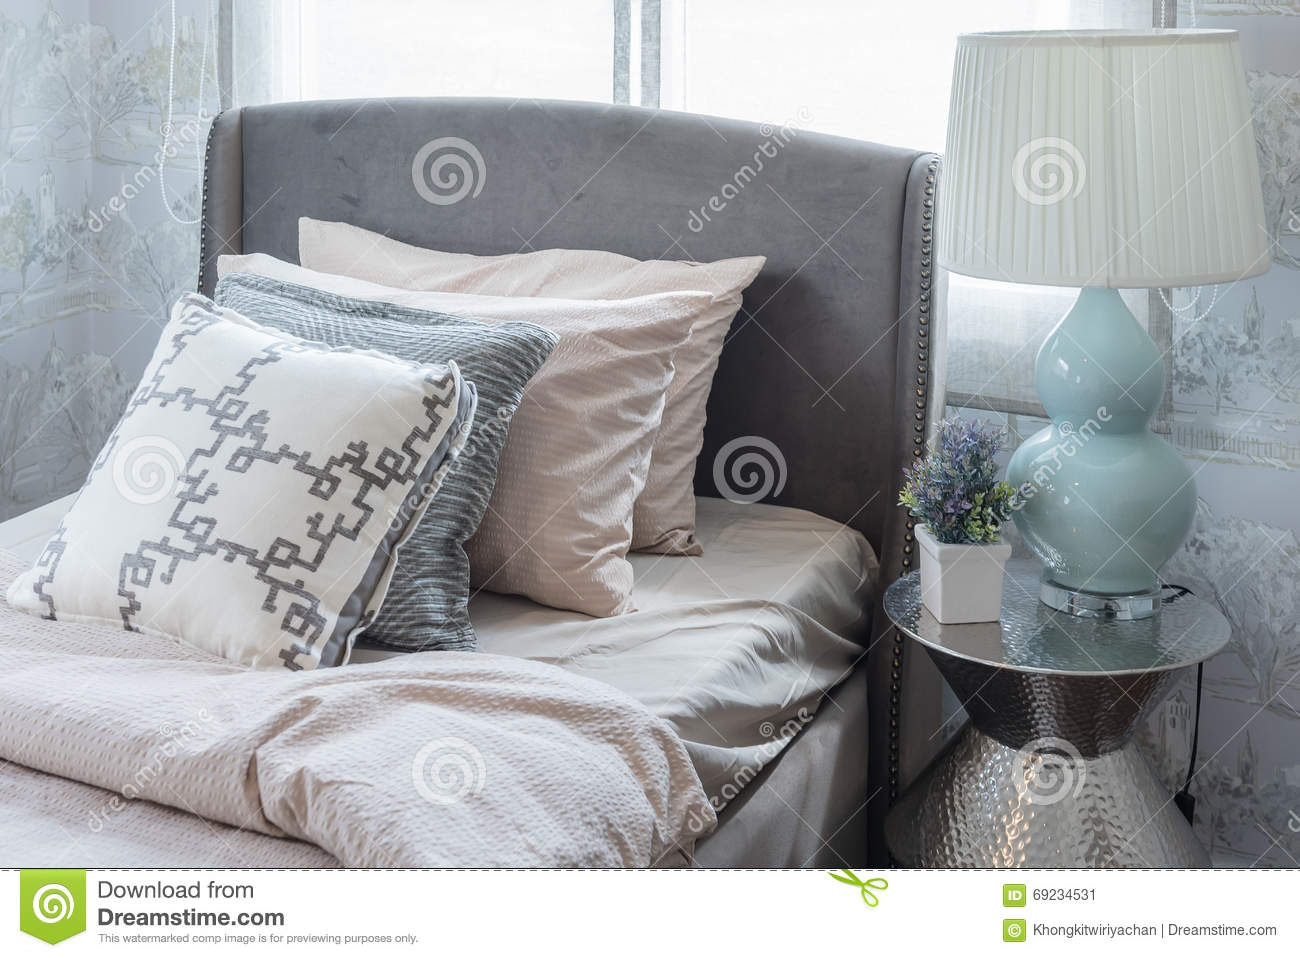 Come Mettere I Cuscini Sul Letto.Row Of Pillows On Bed In Luxury Bedroom Stock Image Image Of